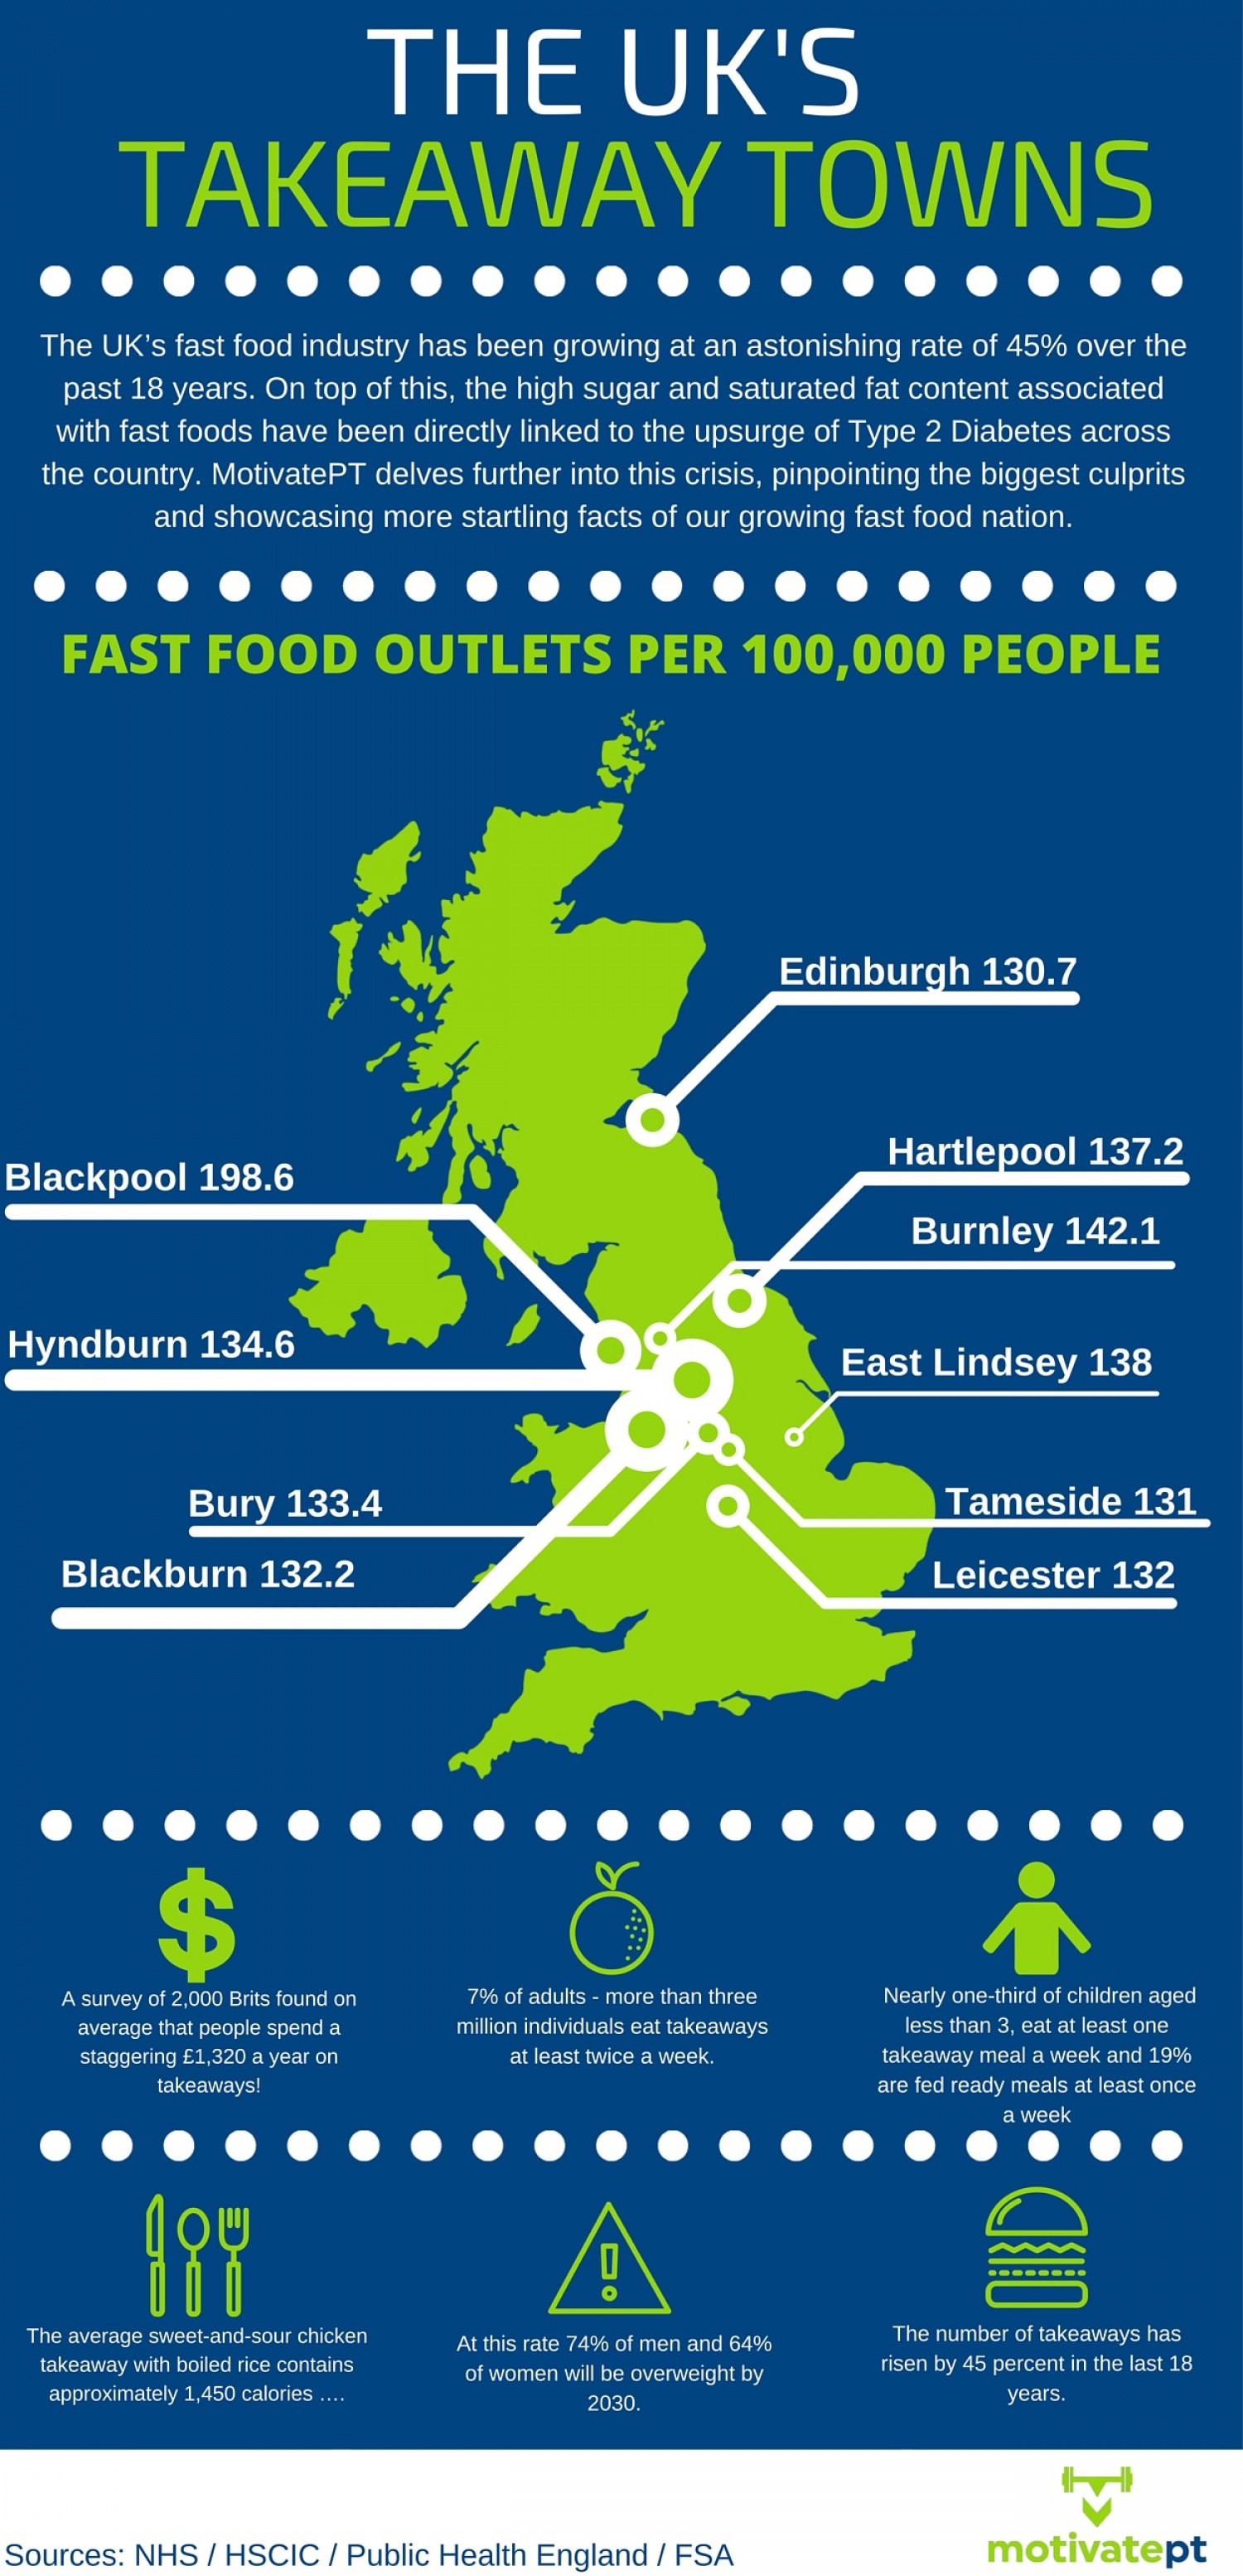 The UK's Takeaway Towns Infographic